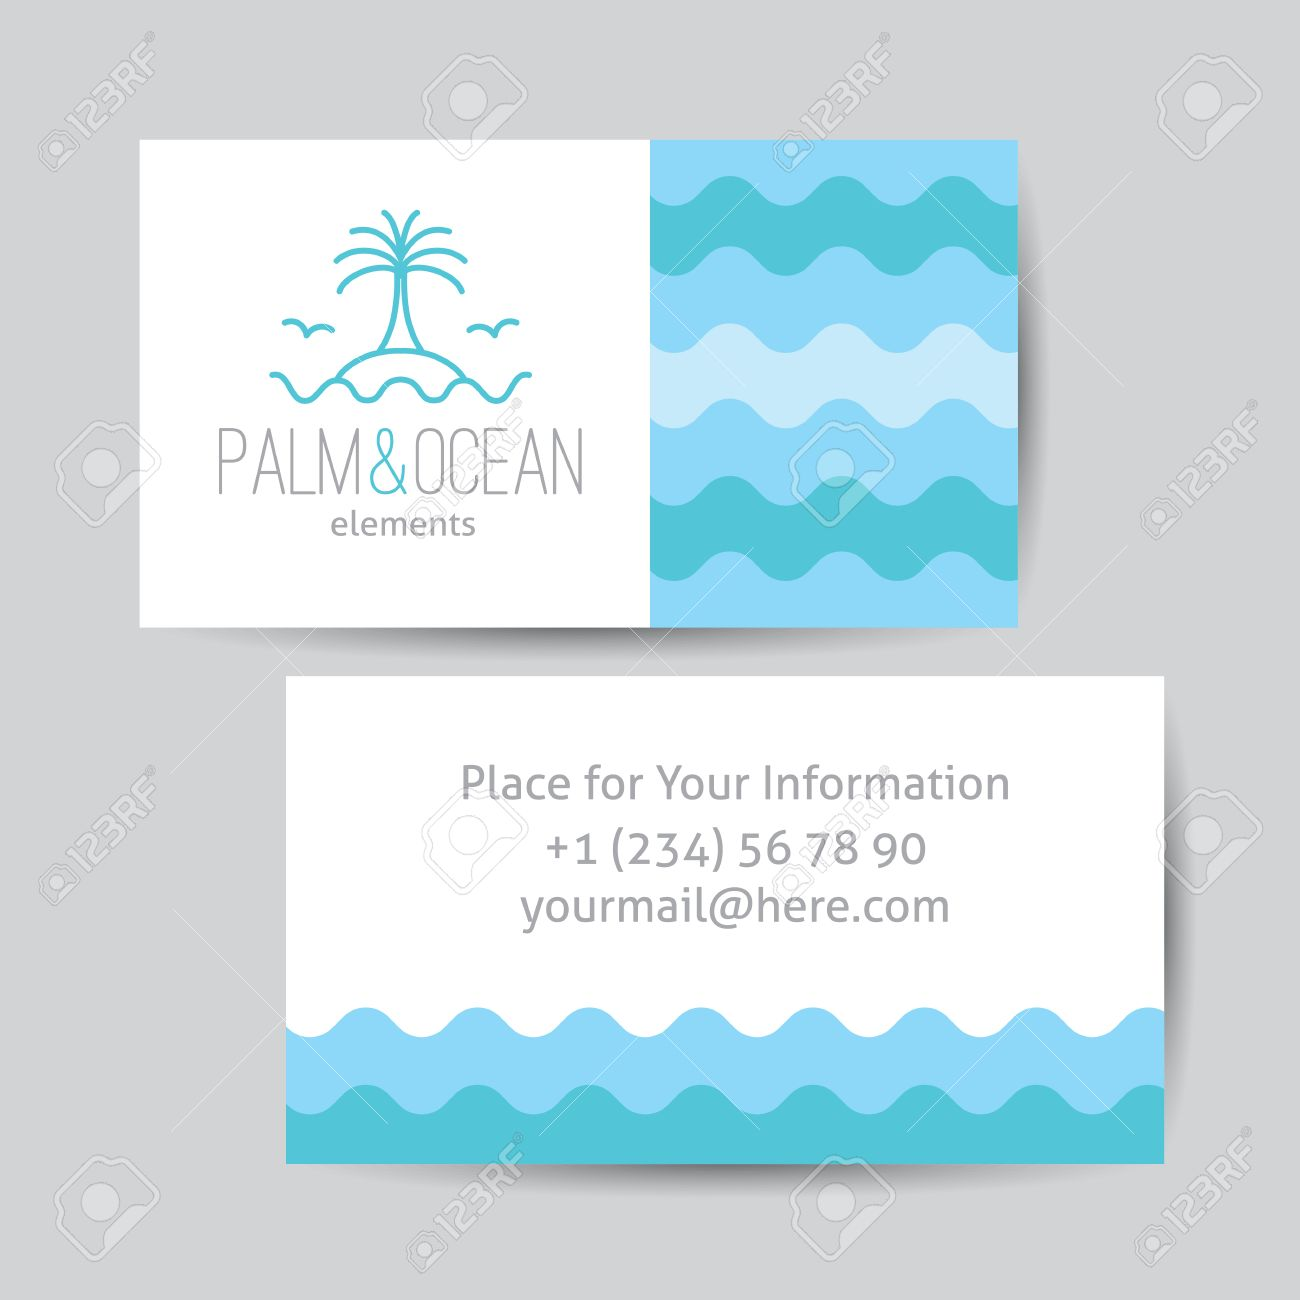 Business Card Template For Travel Agency Palm Seagulls Island - Single business card template